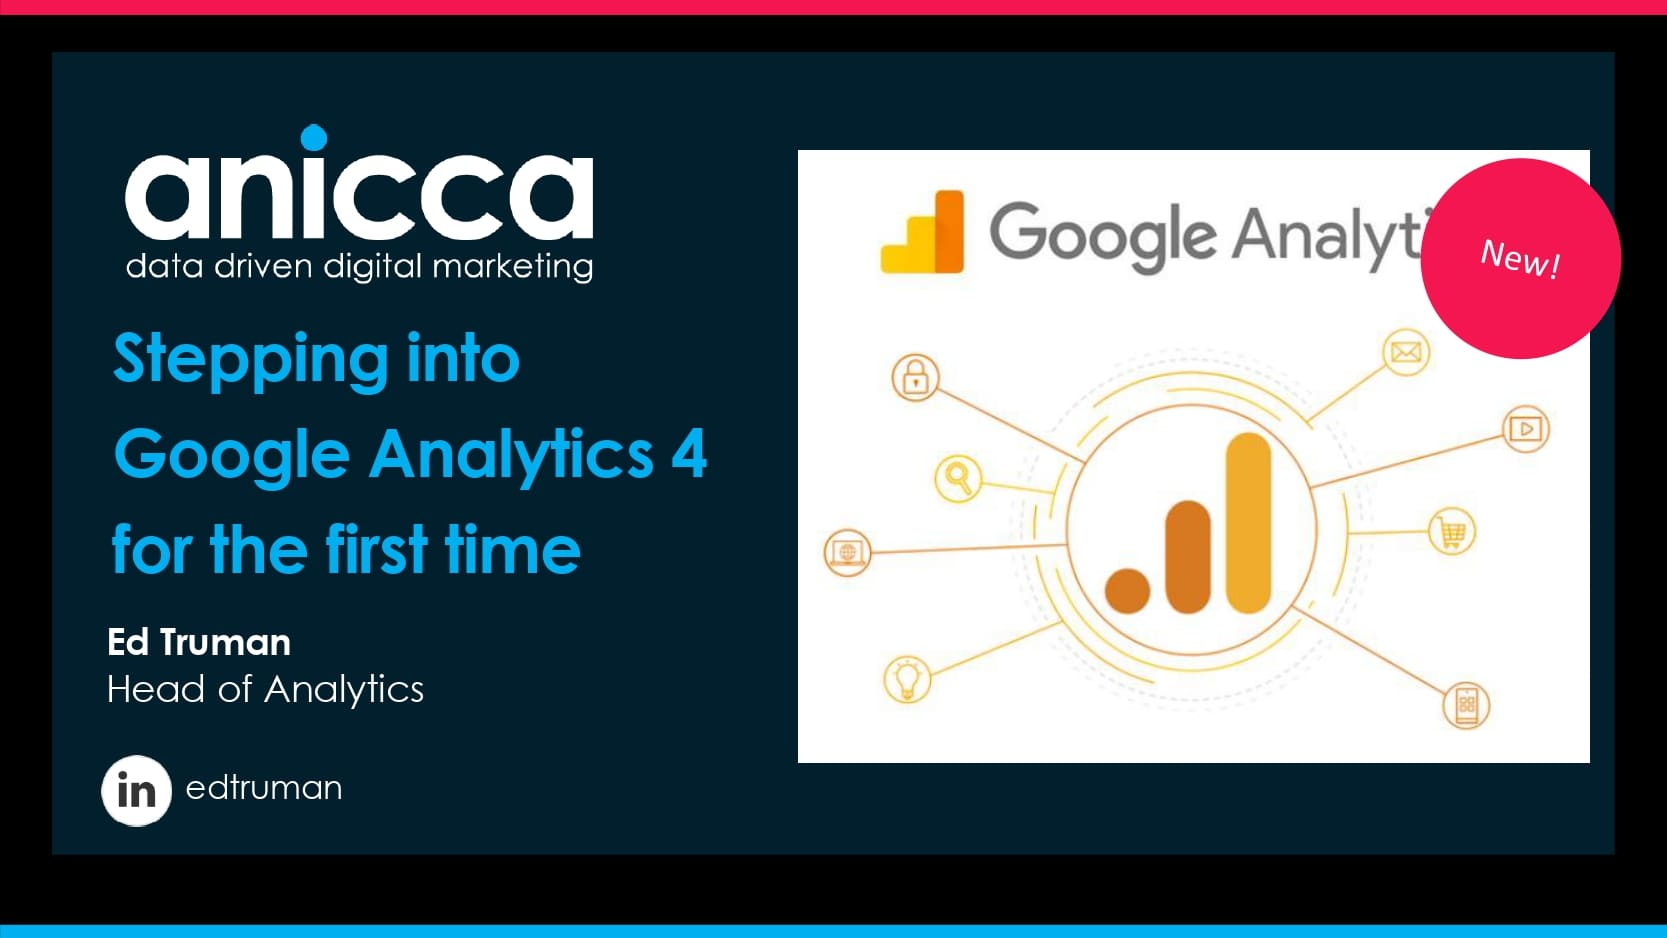 Stepping into Google Analytics 4 by Ed Truman of Anicca Digital